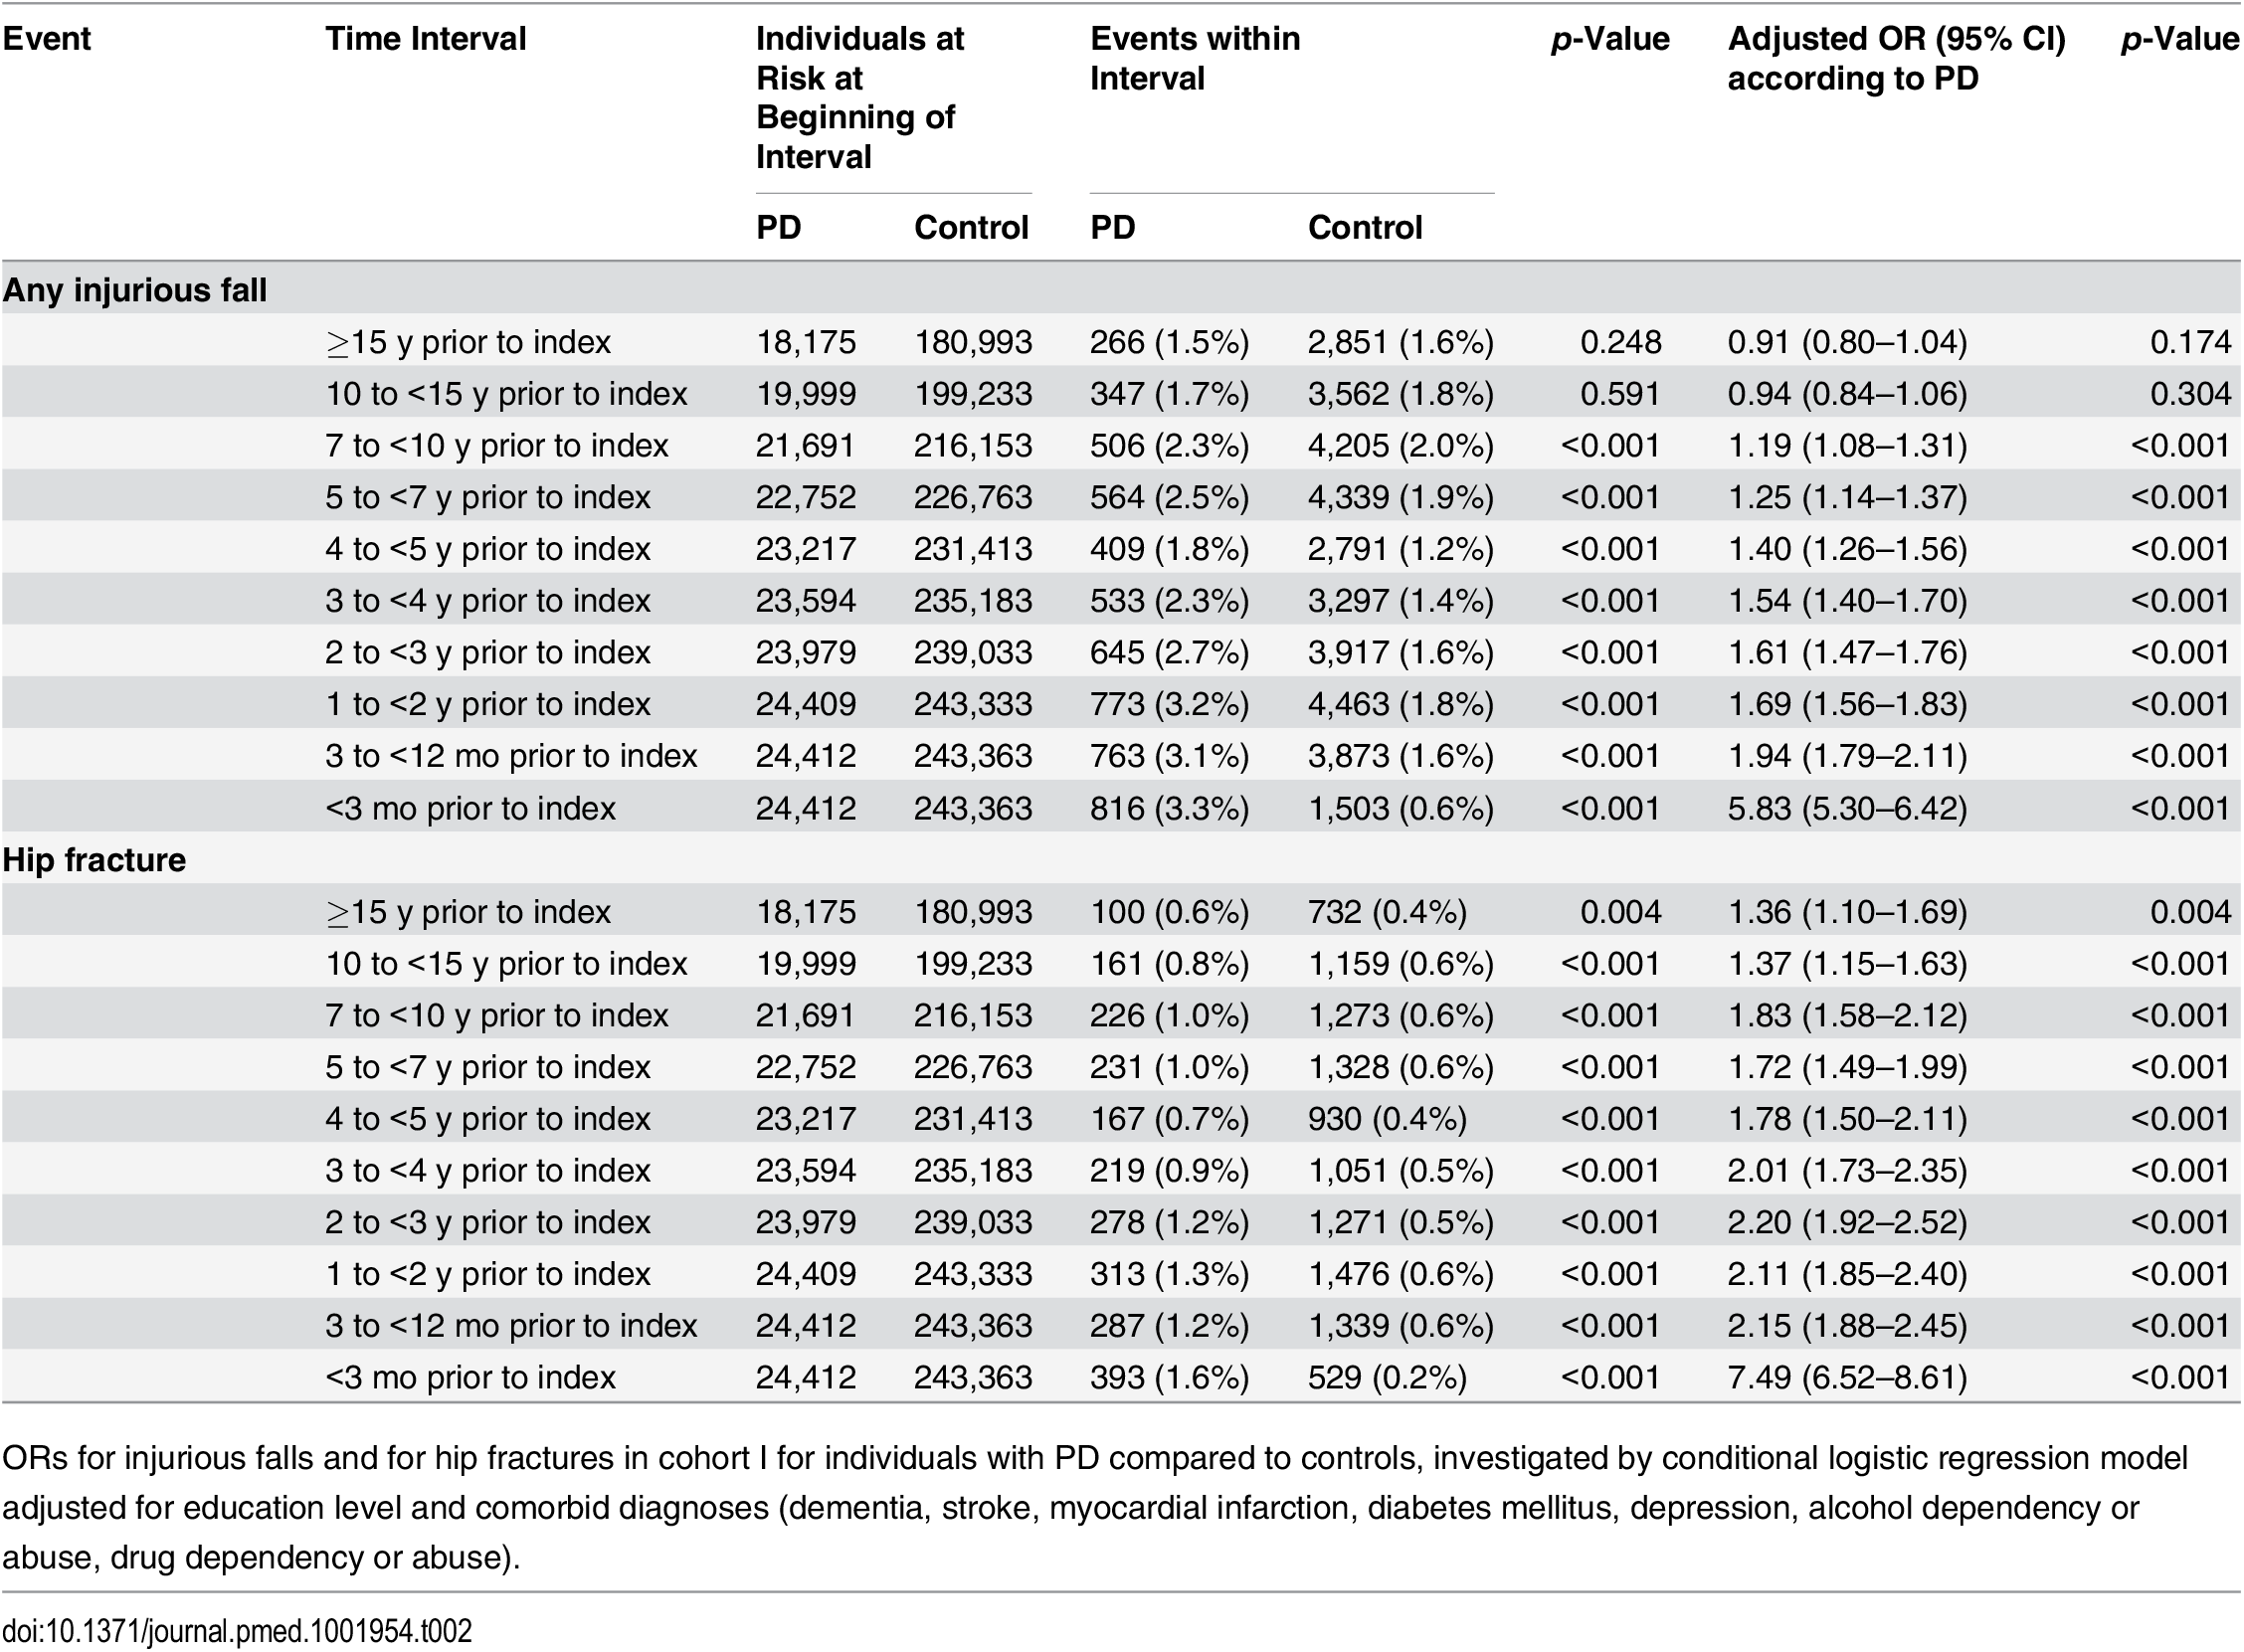 Incidence and odds ratios of injurious fall and hip fracture in cohort I.